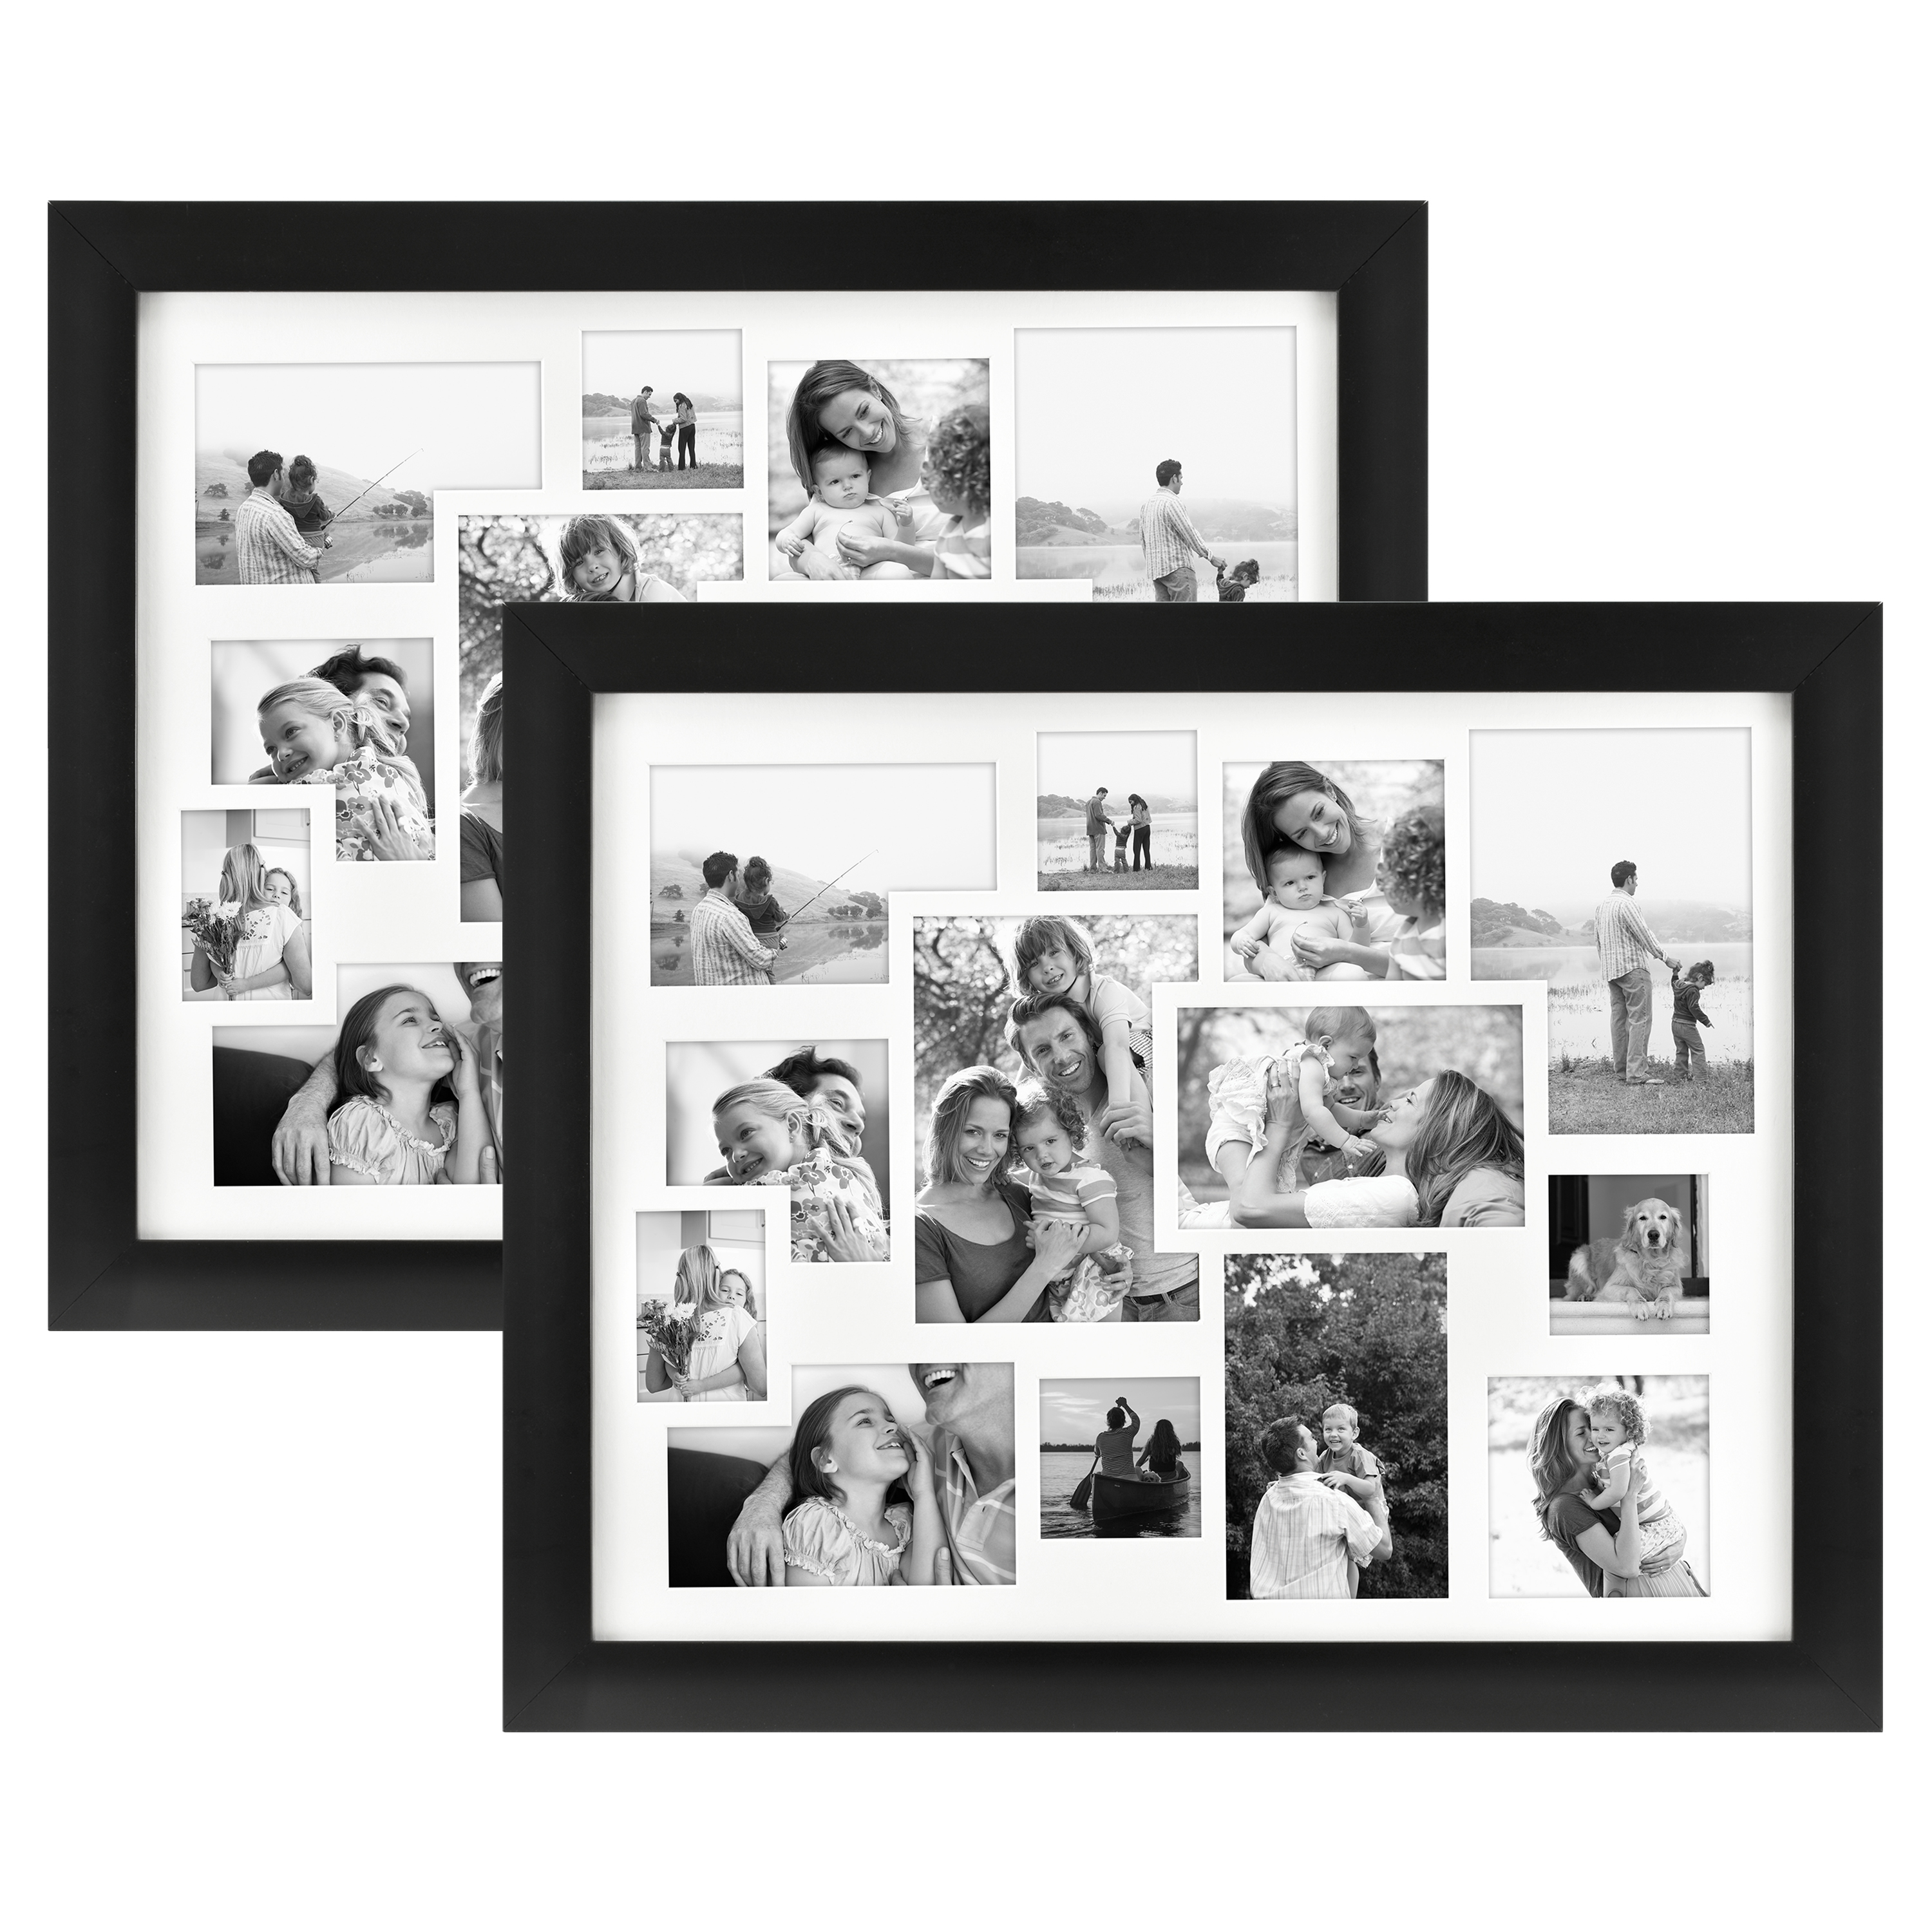 Set Of Two 16 X 20 Black Collage Matted Photo Frames Walmartcom